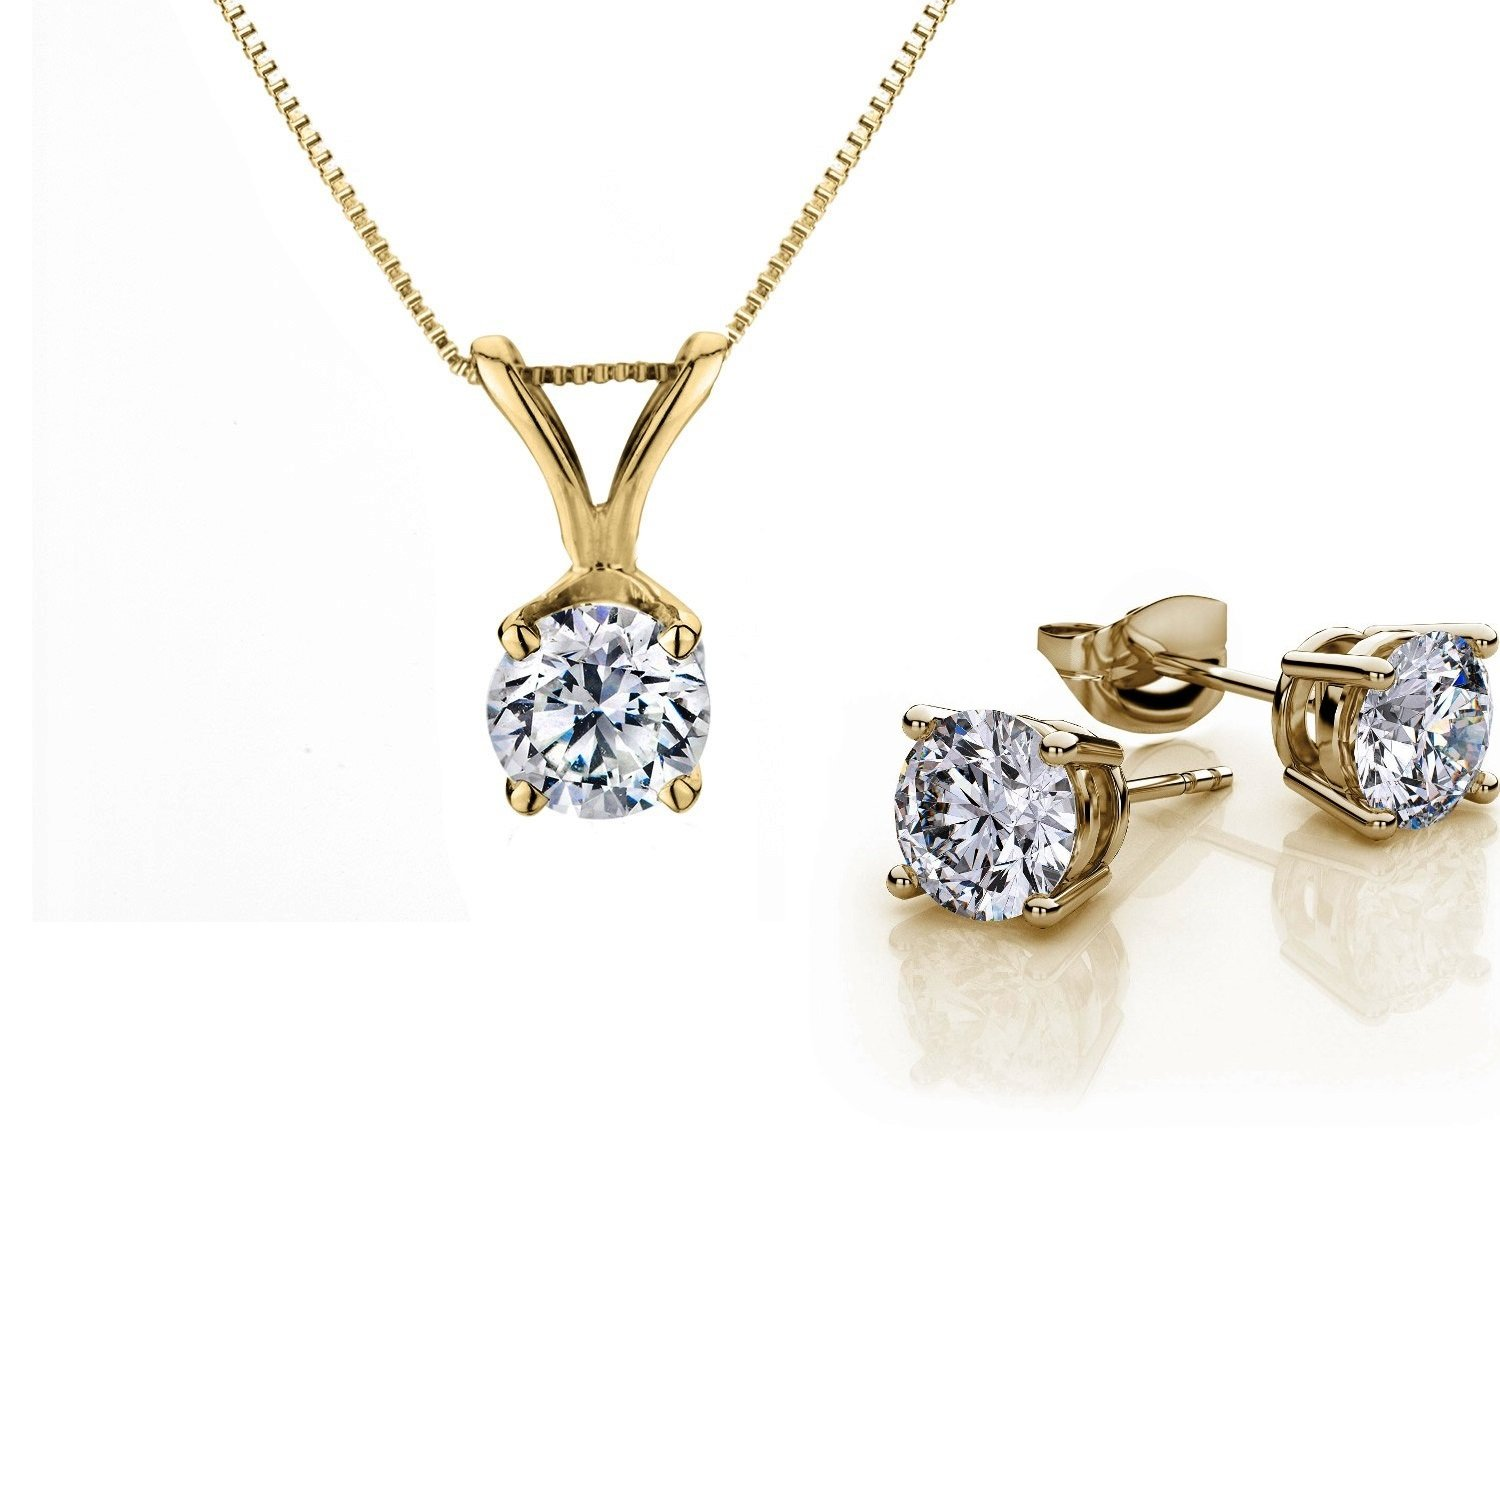 Genuine 1 Carat Natural Solitaire Round Cut Diamond 4 Prong Necklace & Studs Earring Set in 14k Yellow Gold